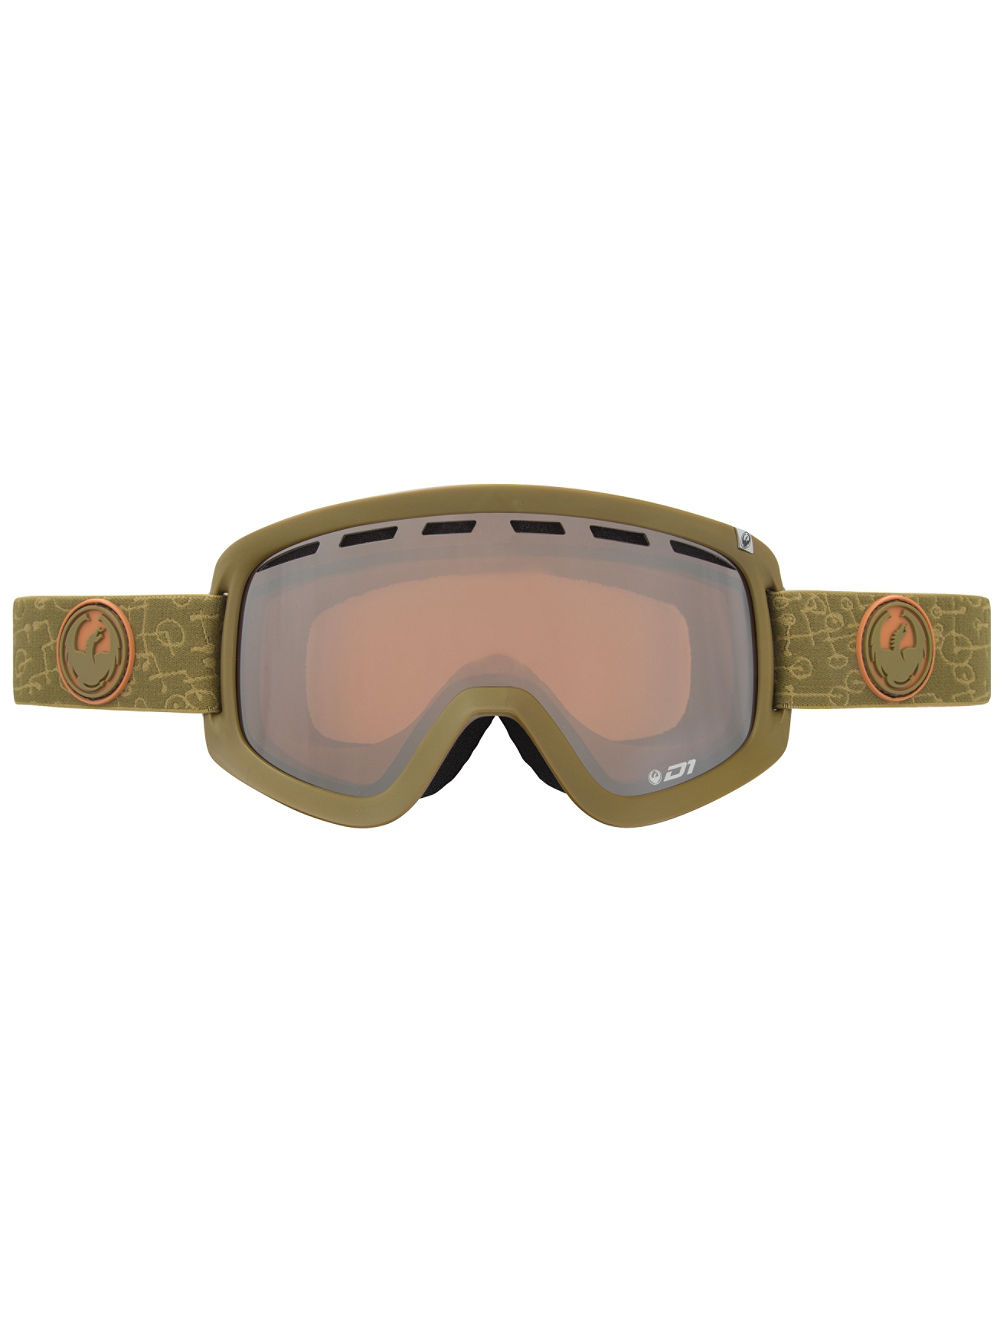 D1 Dirty Martini ionized Goggle